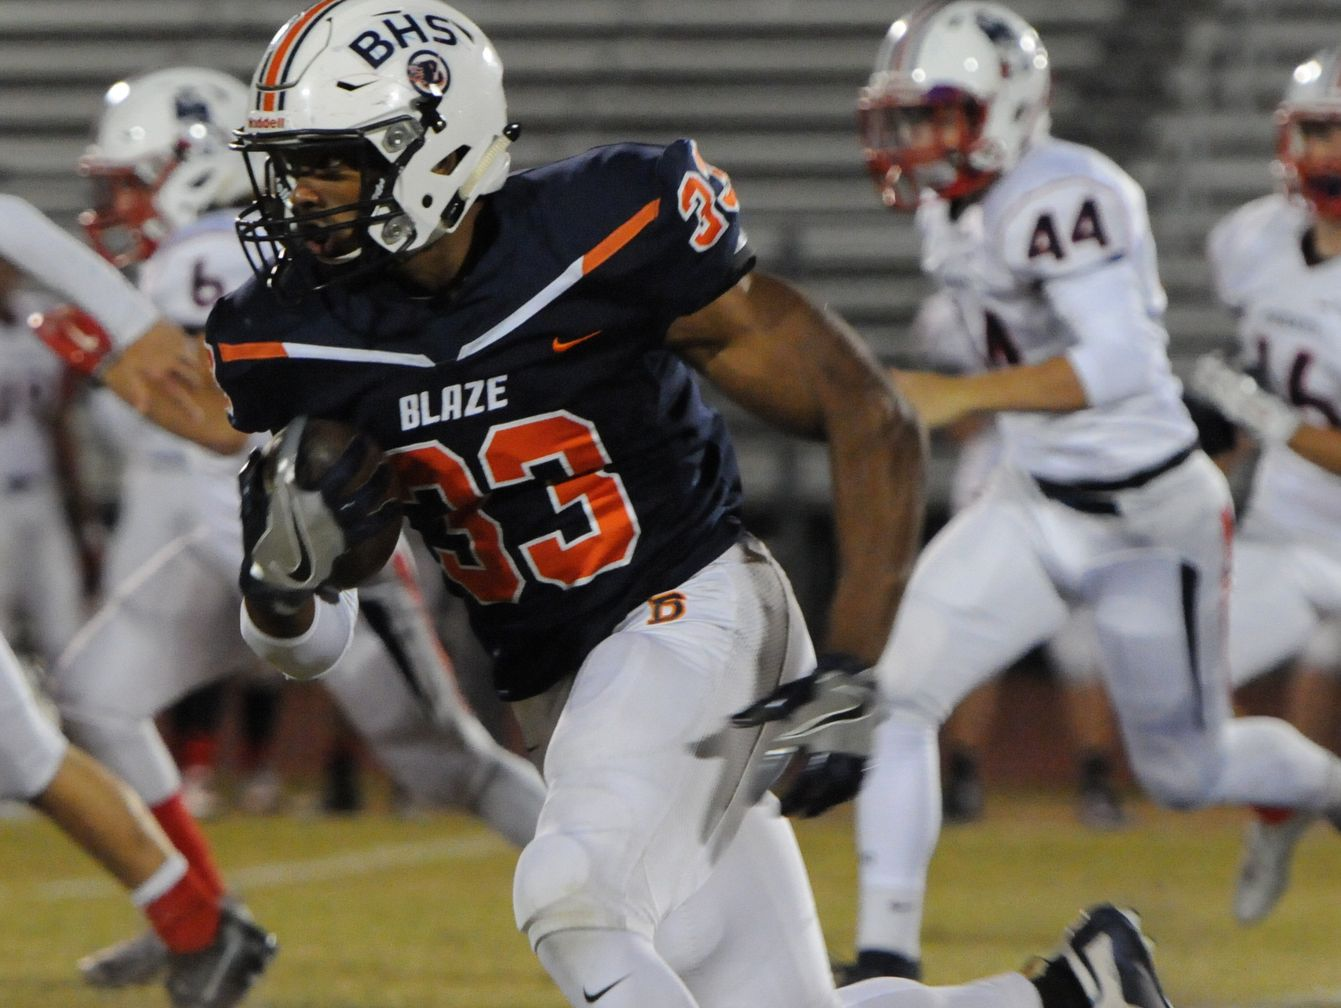 Blackman's Master Teague finds an opening on a kickoff return (he ran 28 times for 325 yards and 3 TDs) on Friday, November 4, 2016.